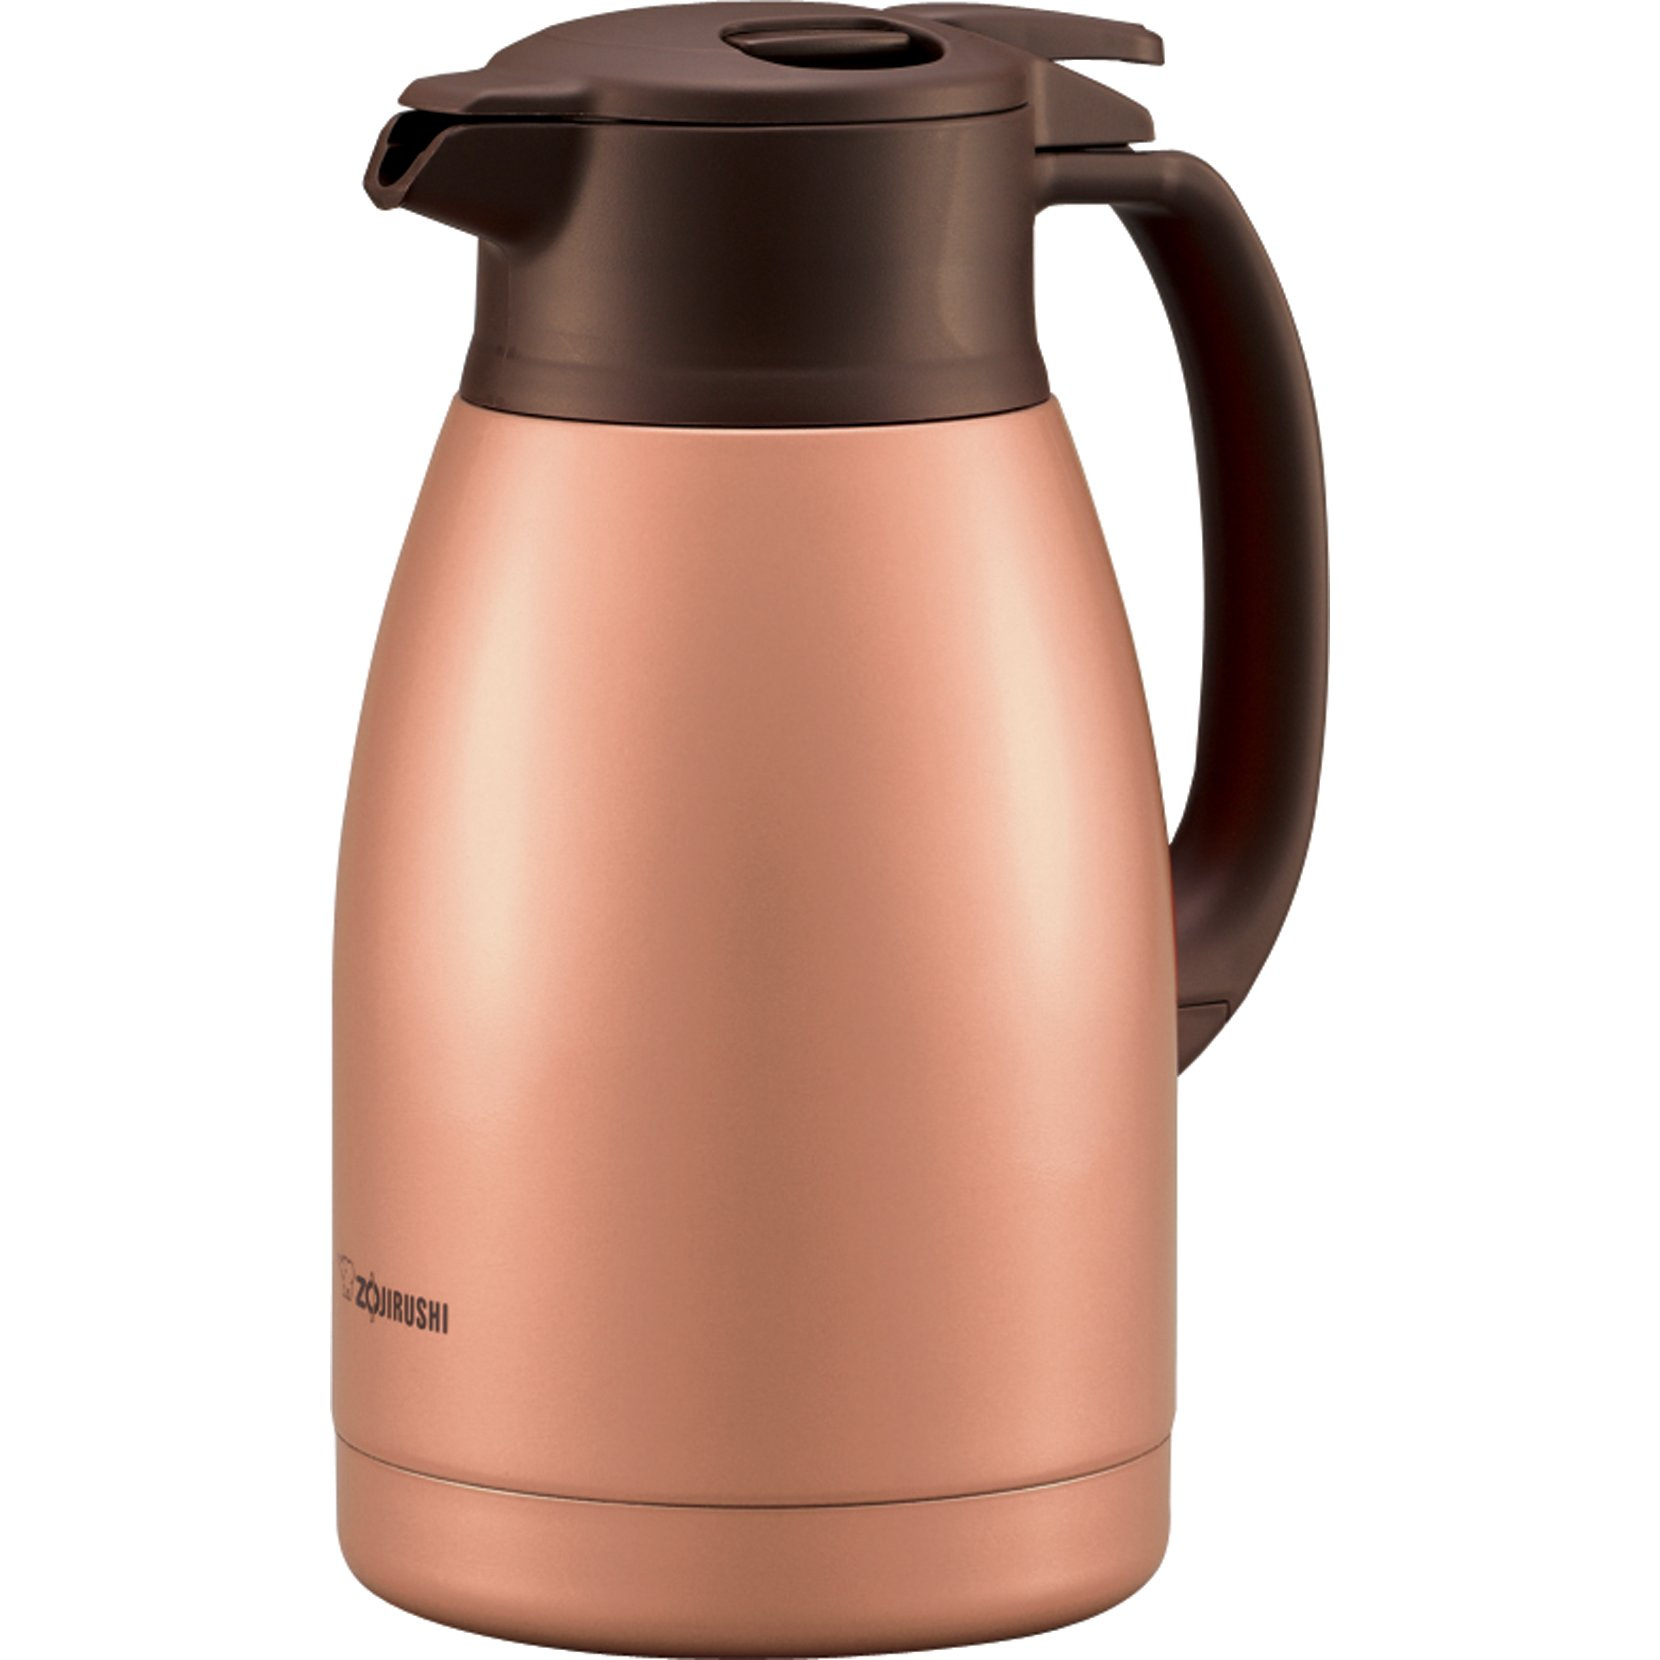 Zojirushi 51-Ounce Stainless Steel Copper Vacuum Carafe